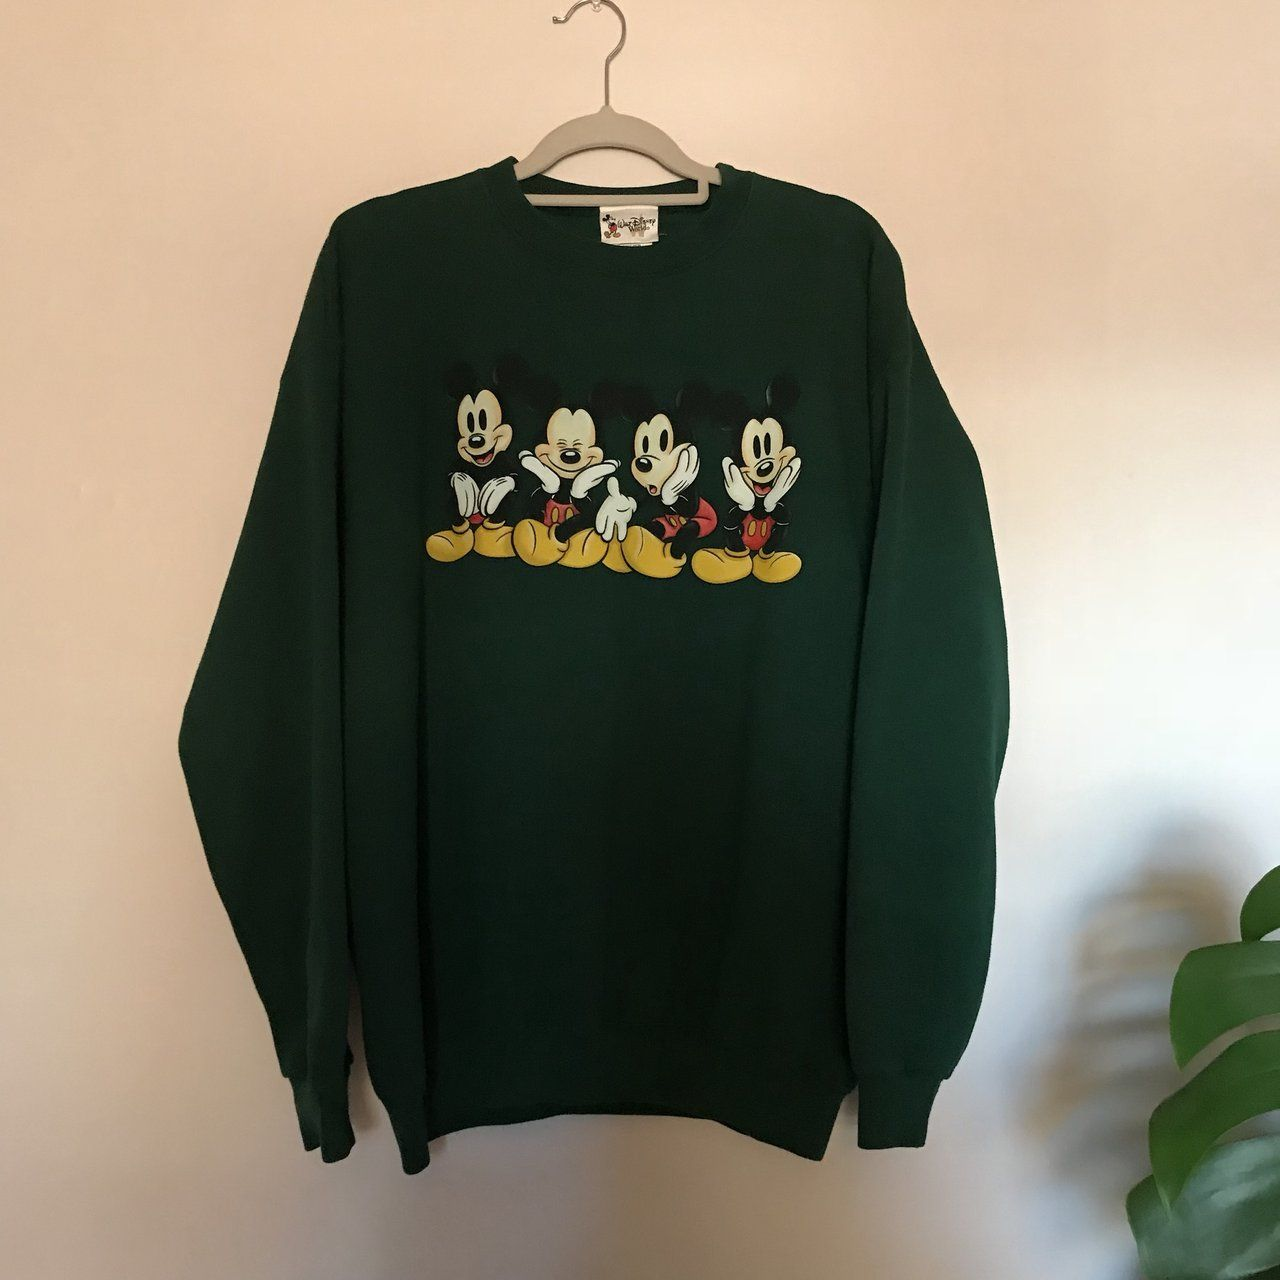 Forest Green Mickey Mouse Disney Sweatshirt Size Extra Say Depop Clothes Stylish Hoodies Cute Casual Outfits [ 1280 x 1280 Pixel ]